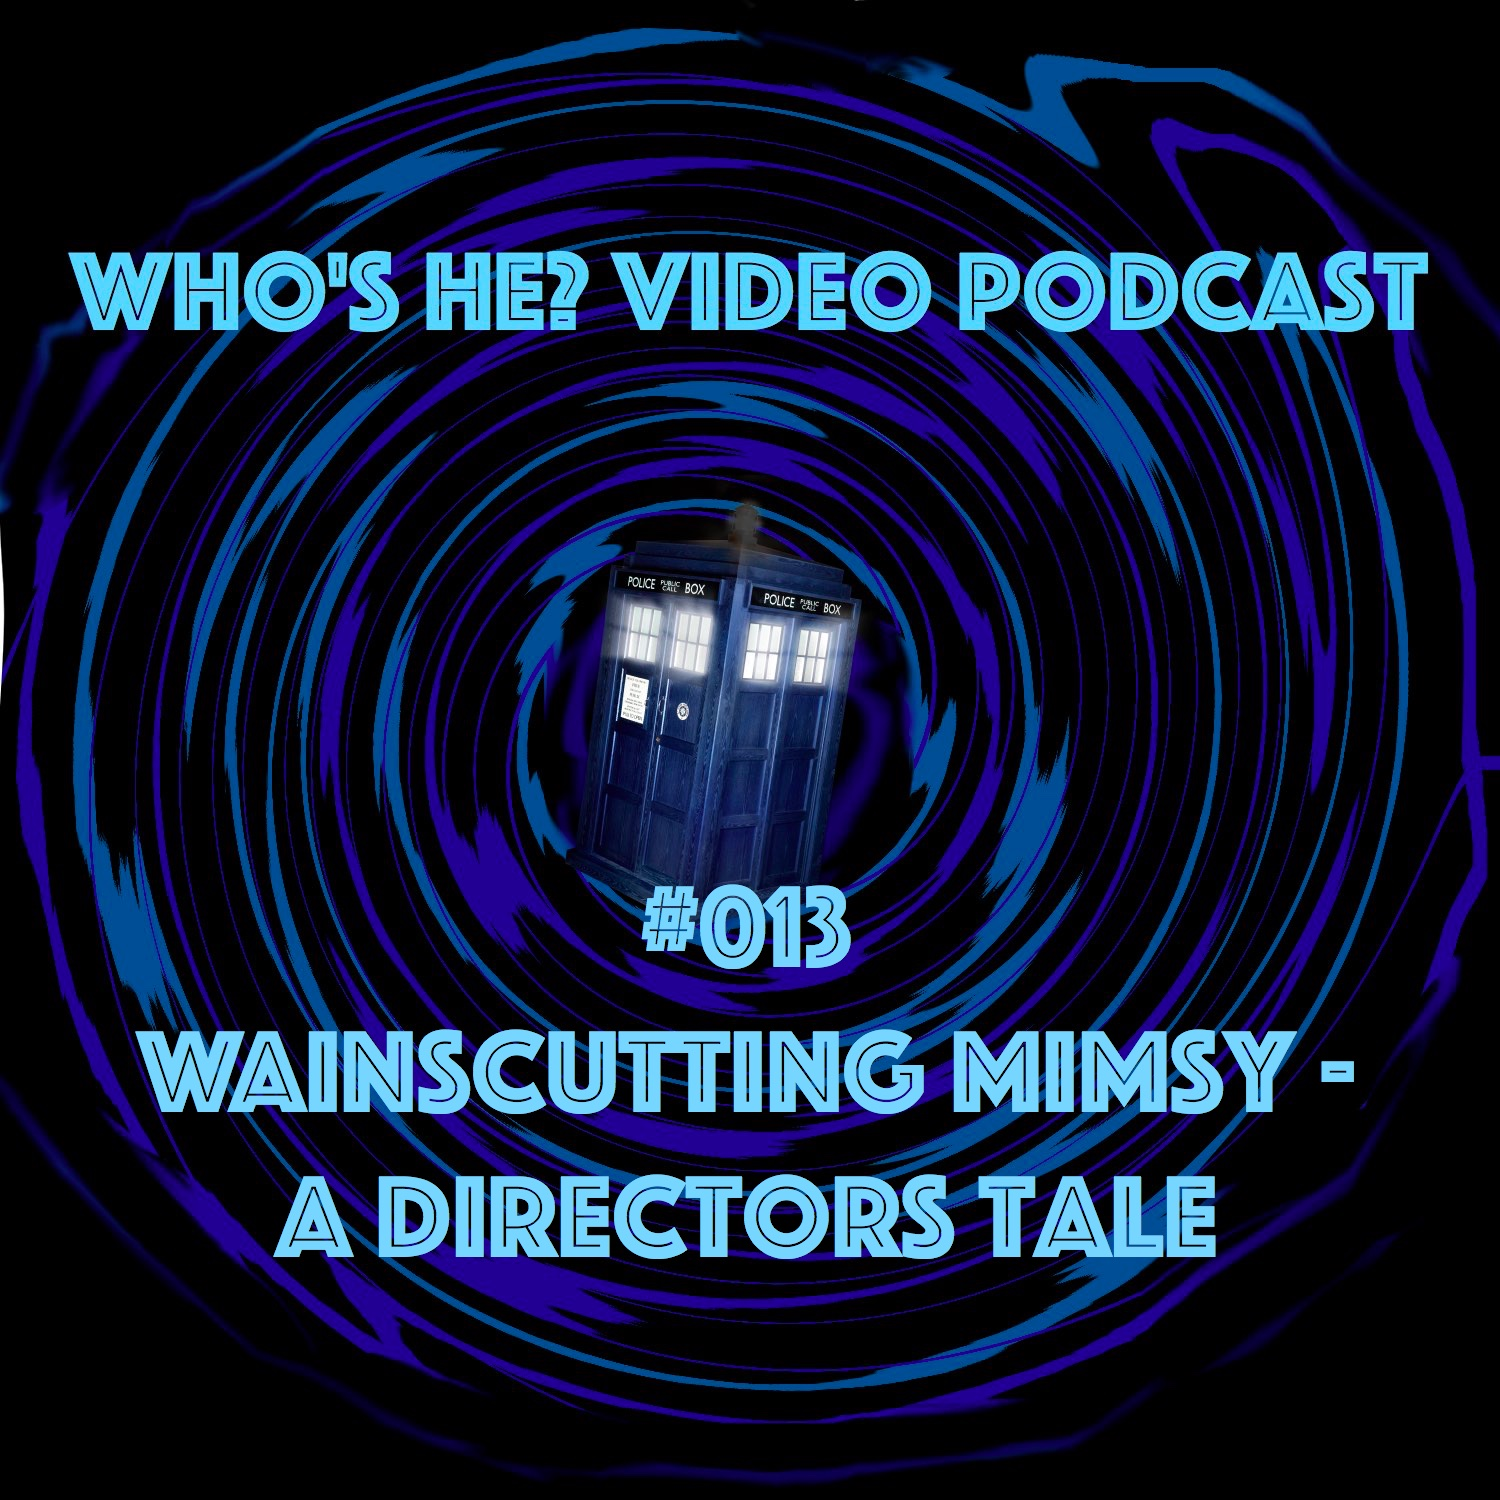 Artwork for Who's He? Video Podcast #013 Wainscutting Mimsy - A Directors Tale